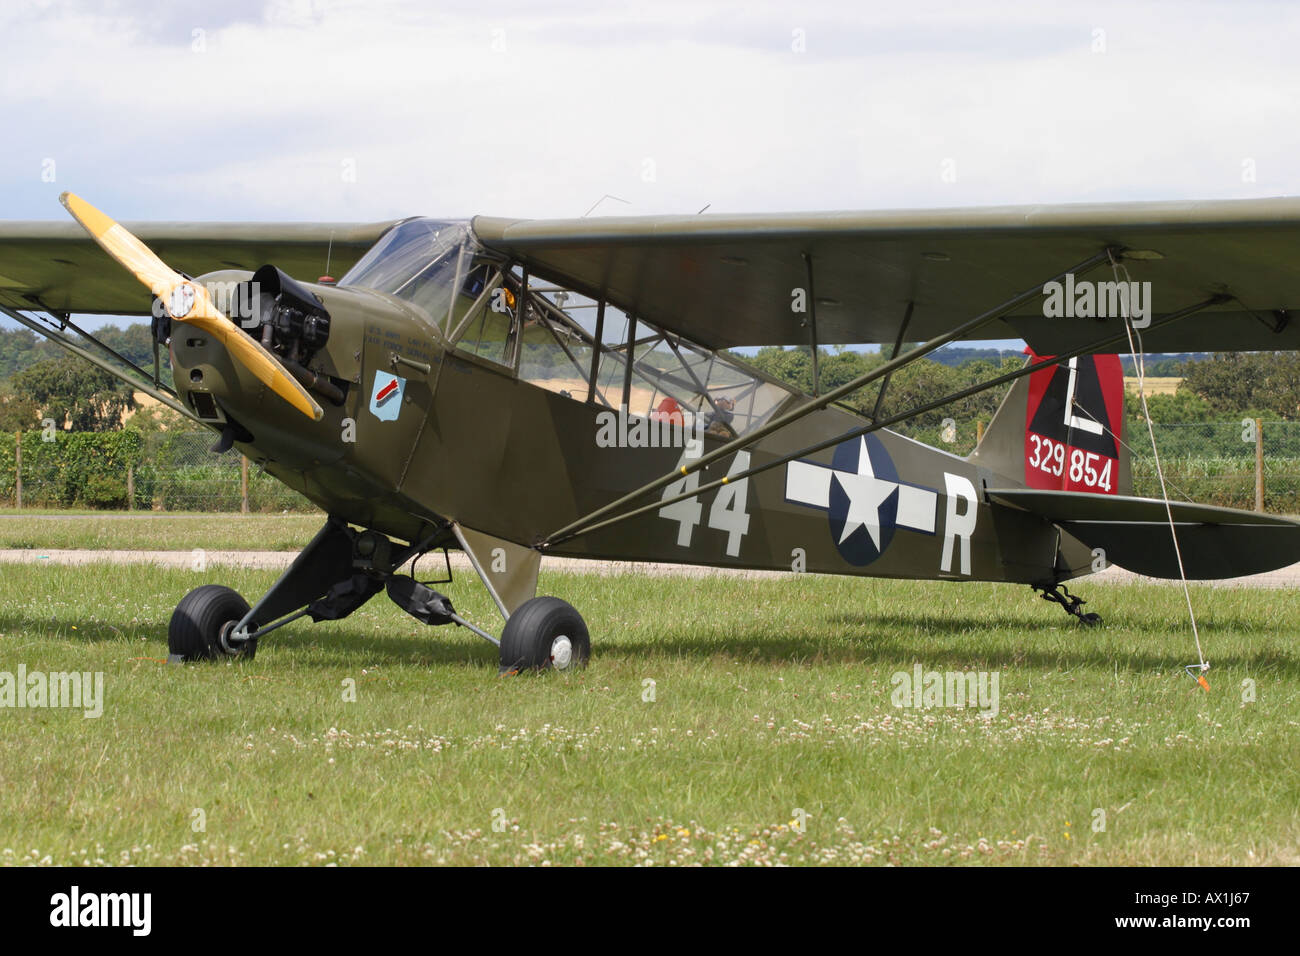 Piper Cub L-4 vintage warbird World War 2 US Army observation spotter plane Stock Photo